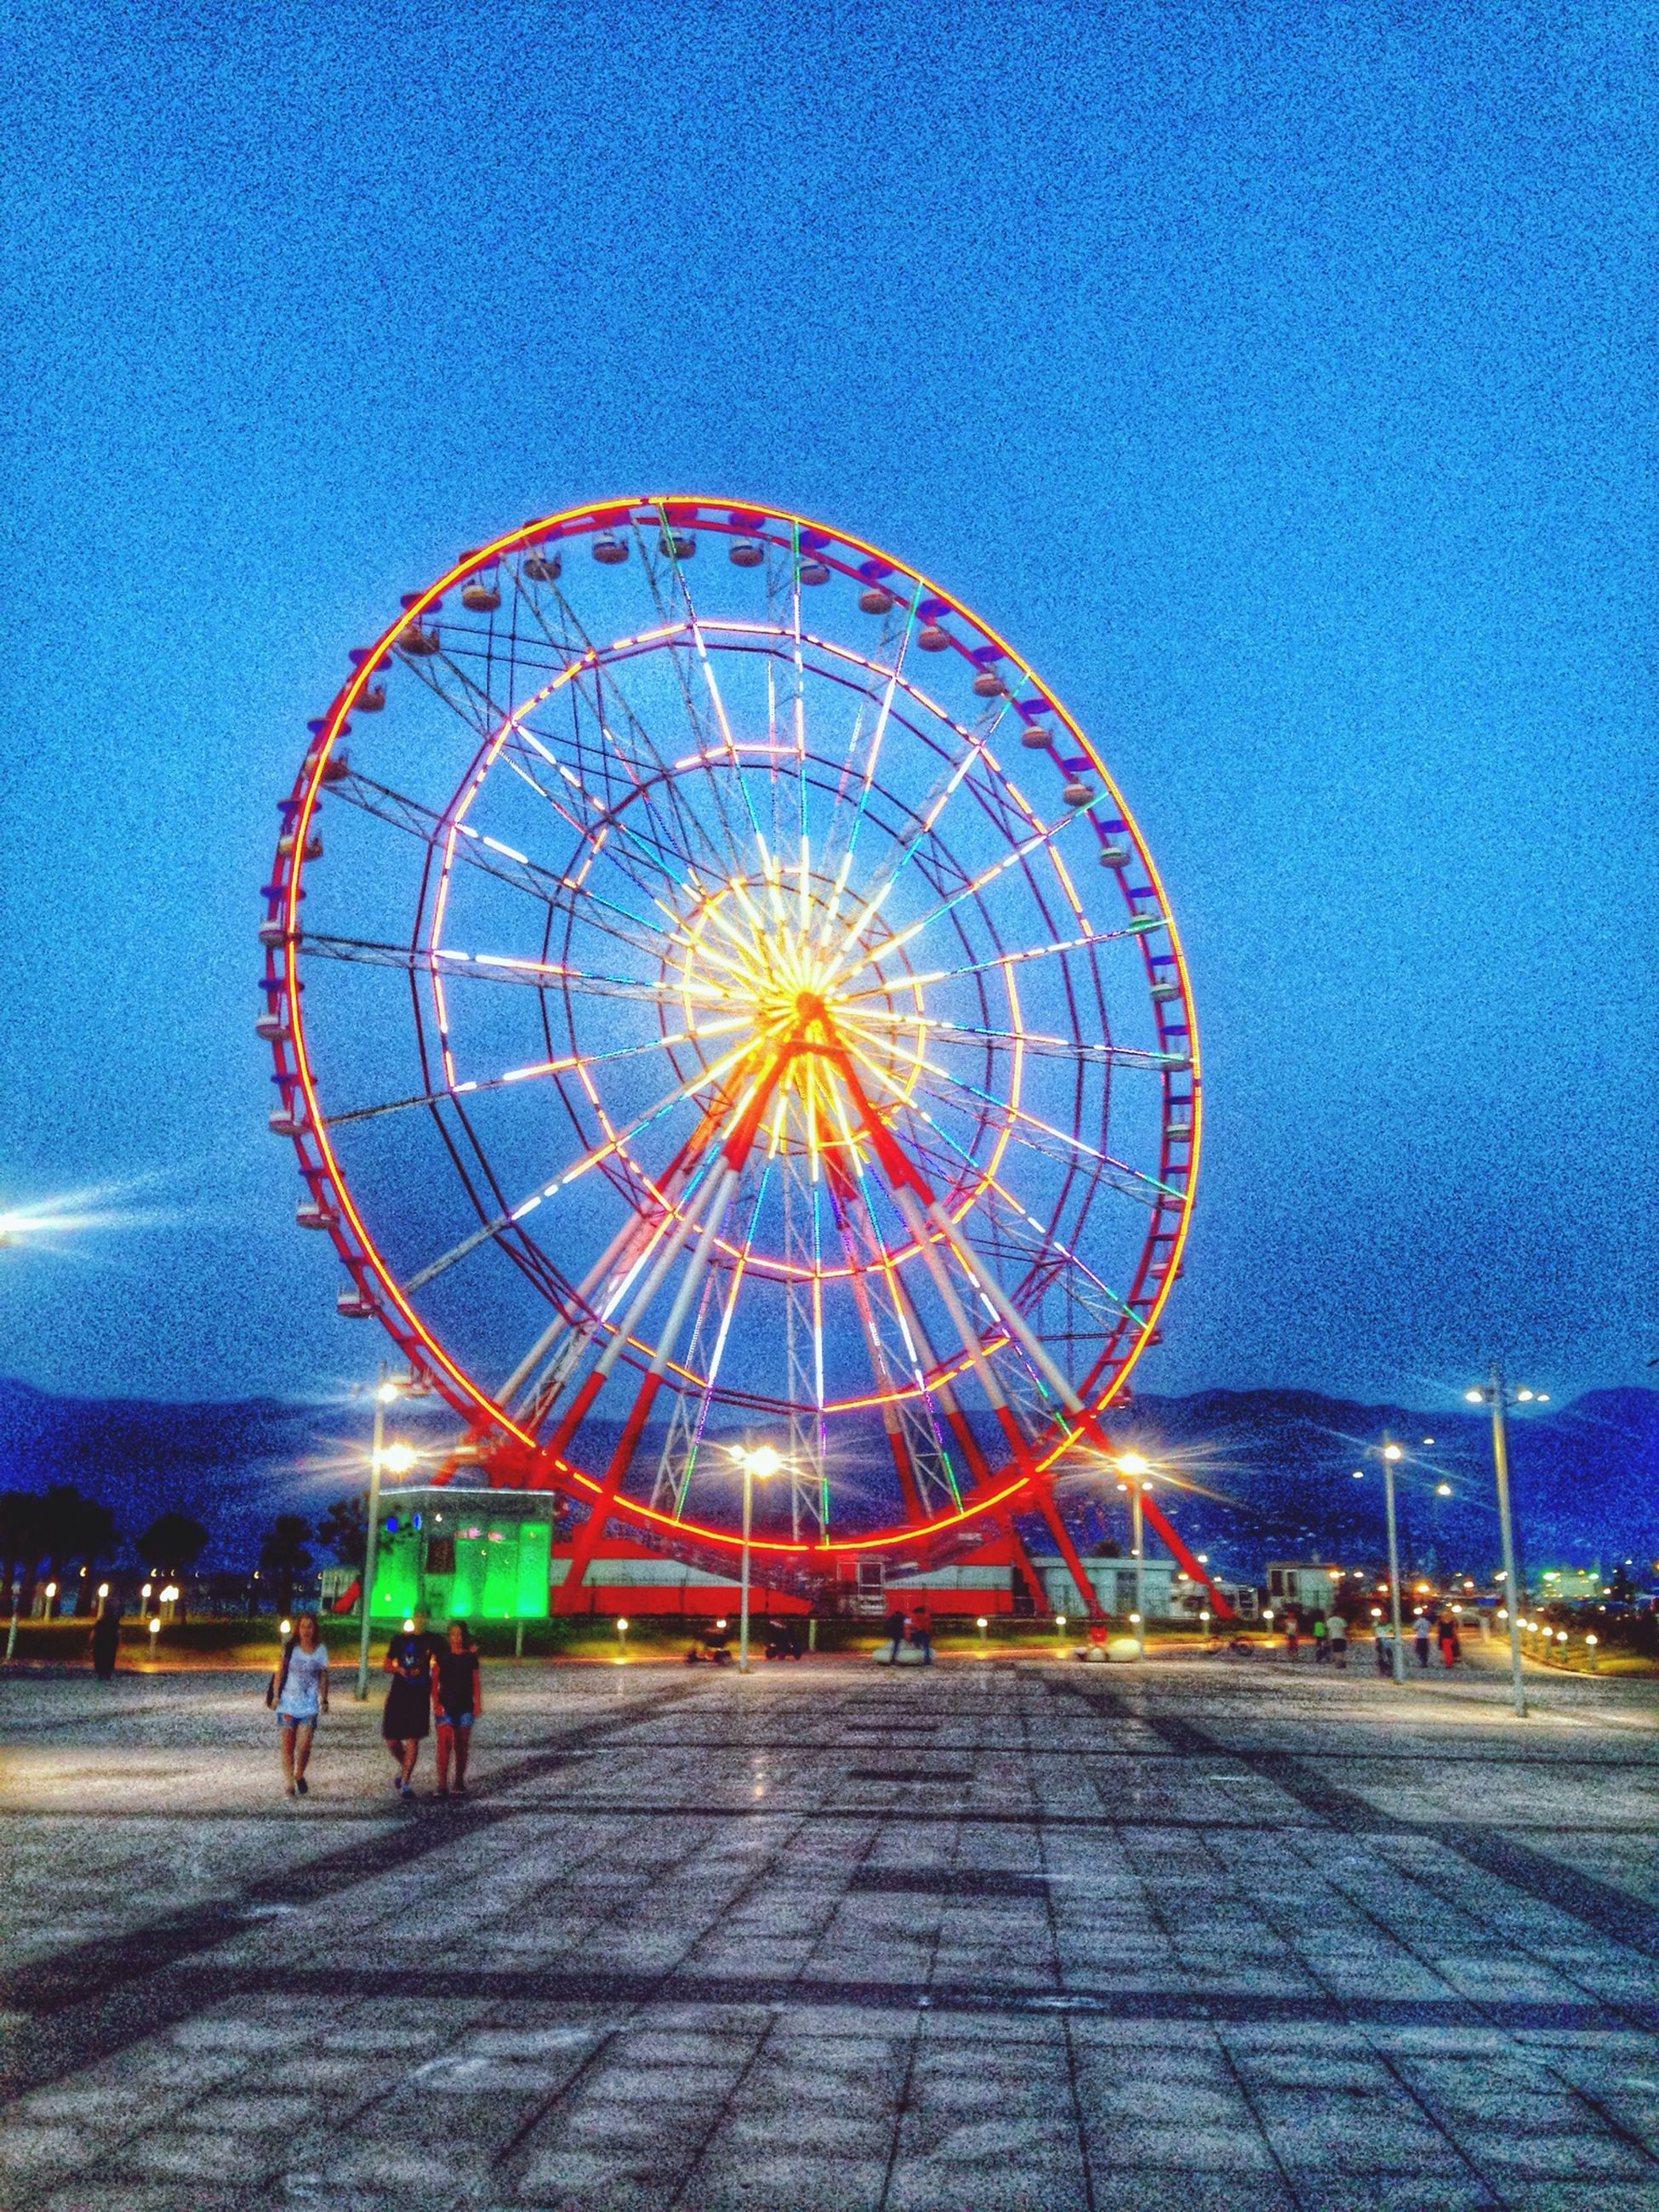 illuminated, leisure activity, sky, night, lifestyles, amusement park, arts culture and entertainment, ferris wheel, men, amusement park ride, blue, dusk, street, clear sky, person, road, lighting equipment, incidental people, outdoors